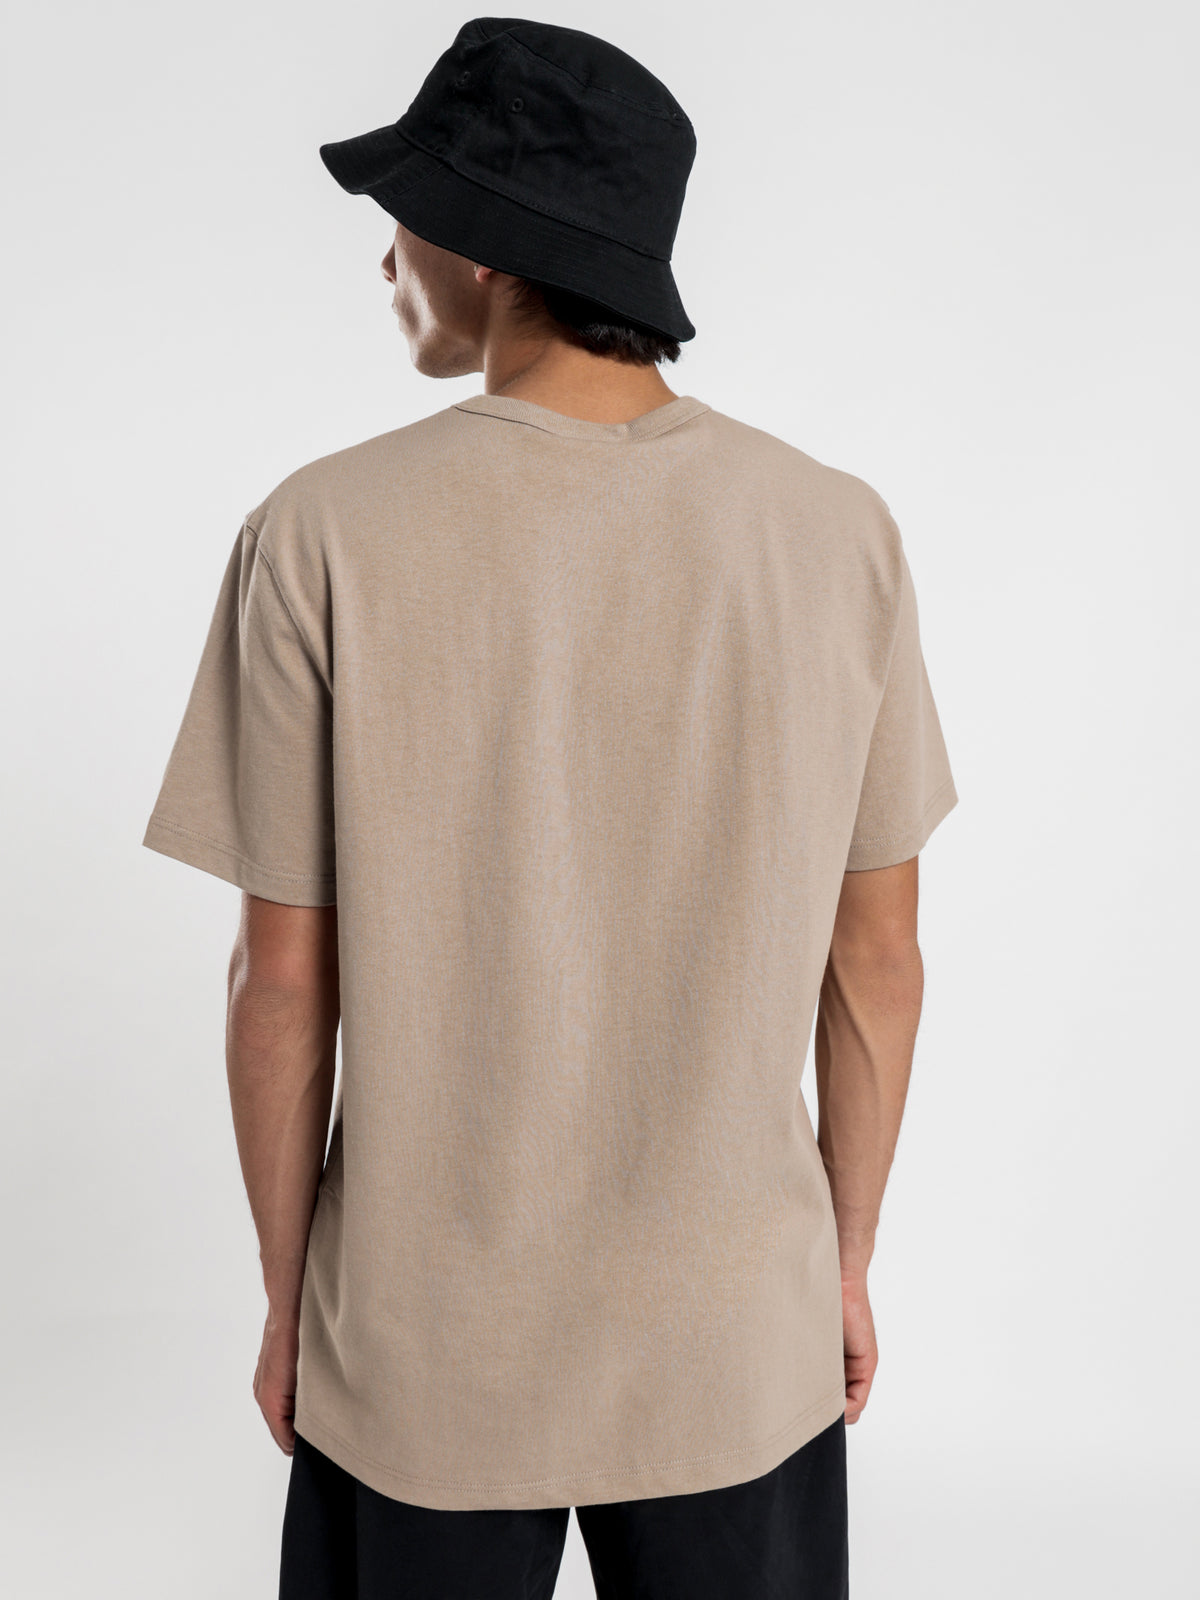 Heritage T-Shirt in Dark Khaki